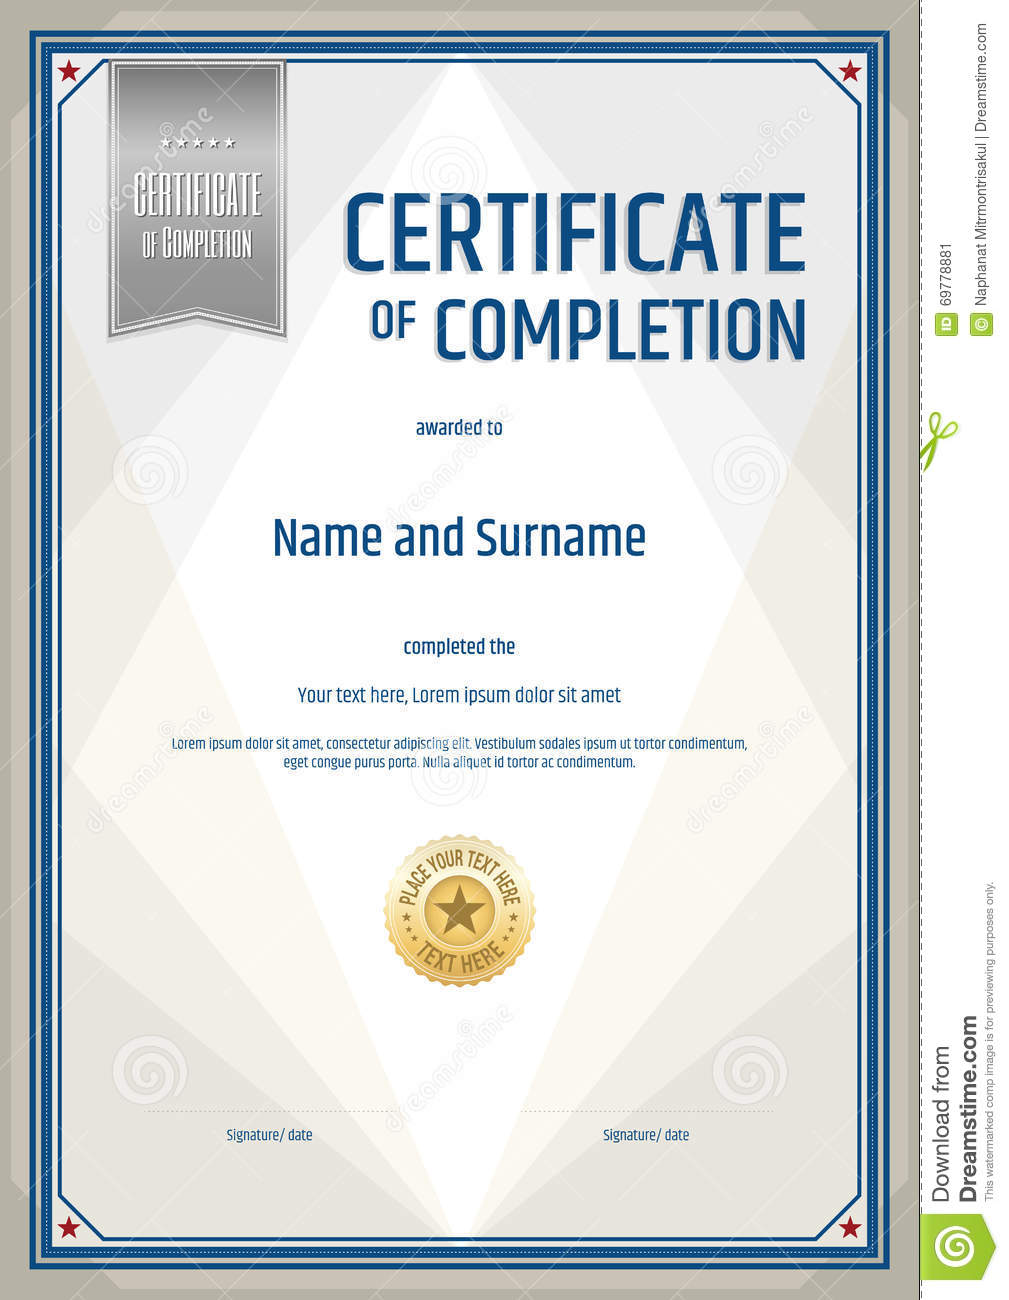 Certificate Of Completion Template In Portrait Stock Vector Illustration Of Business Portrait